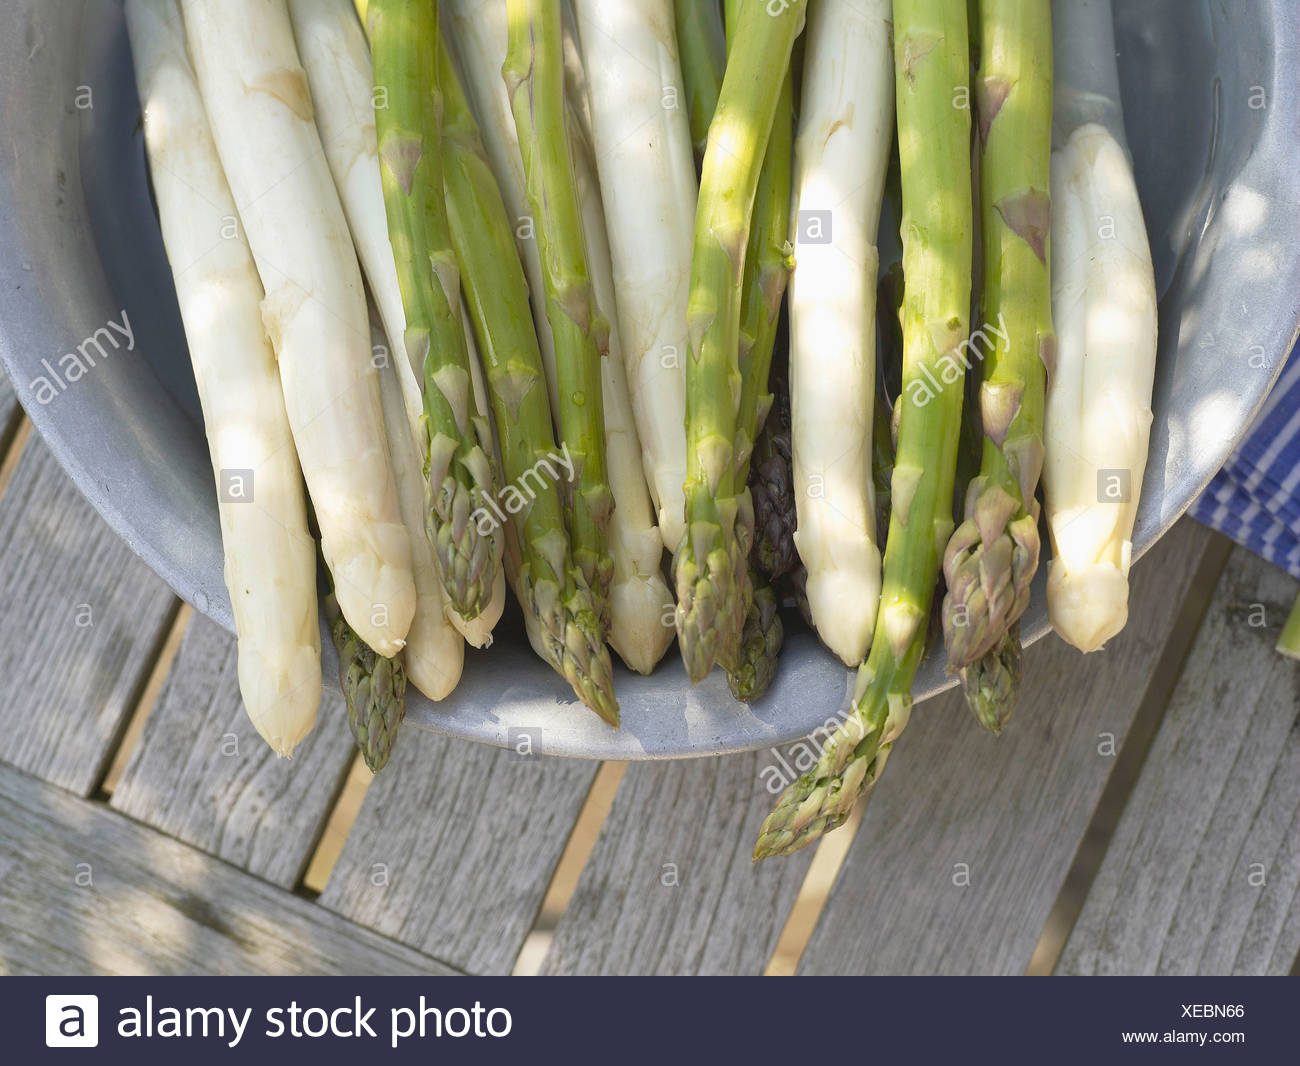 Green asparagus in container - Stock Image